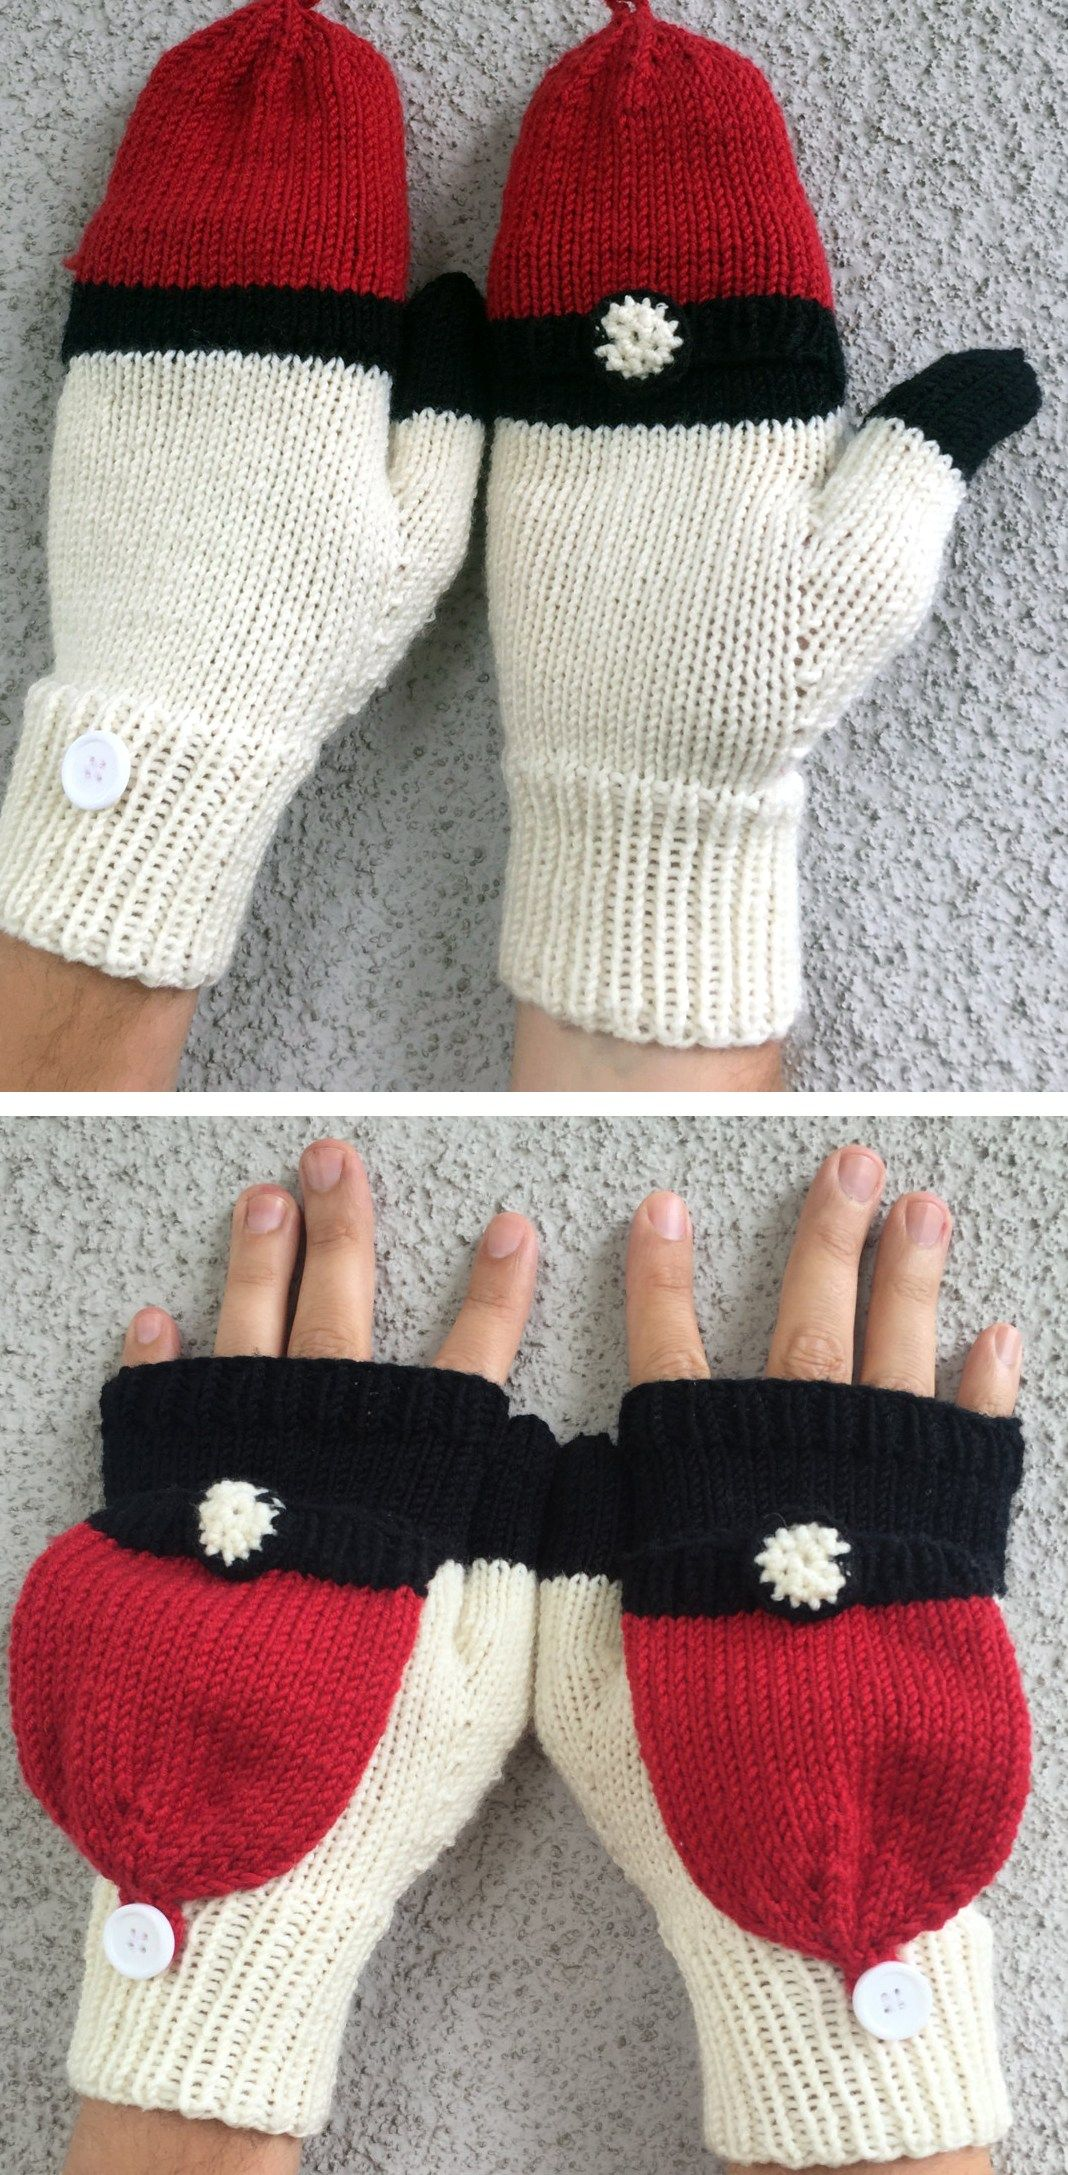 Gaming Knitting Patterns | Mittens, Knitting patterns and Pokémon